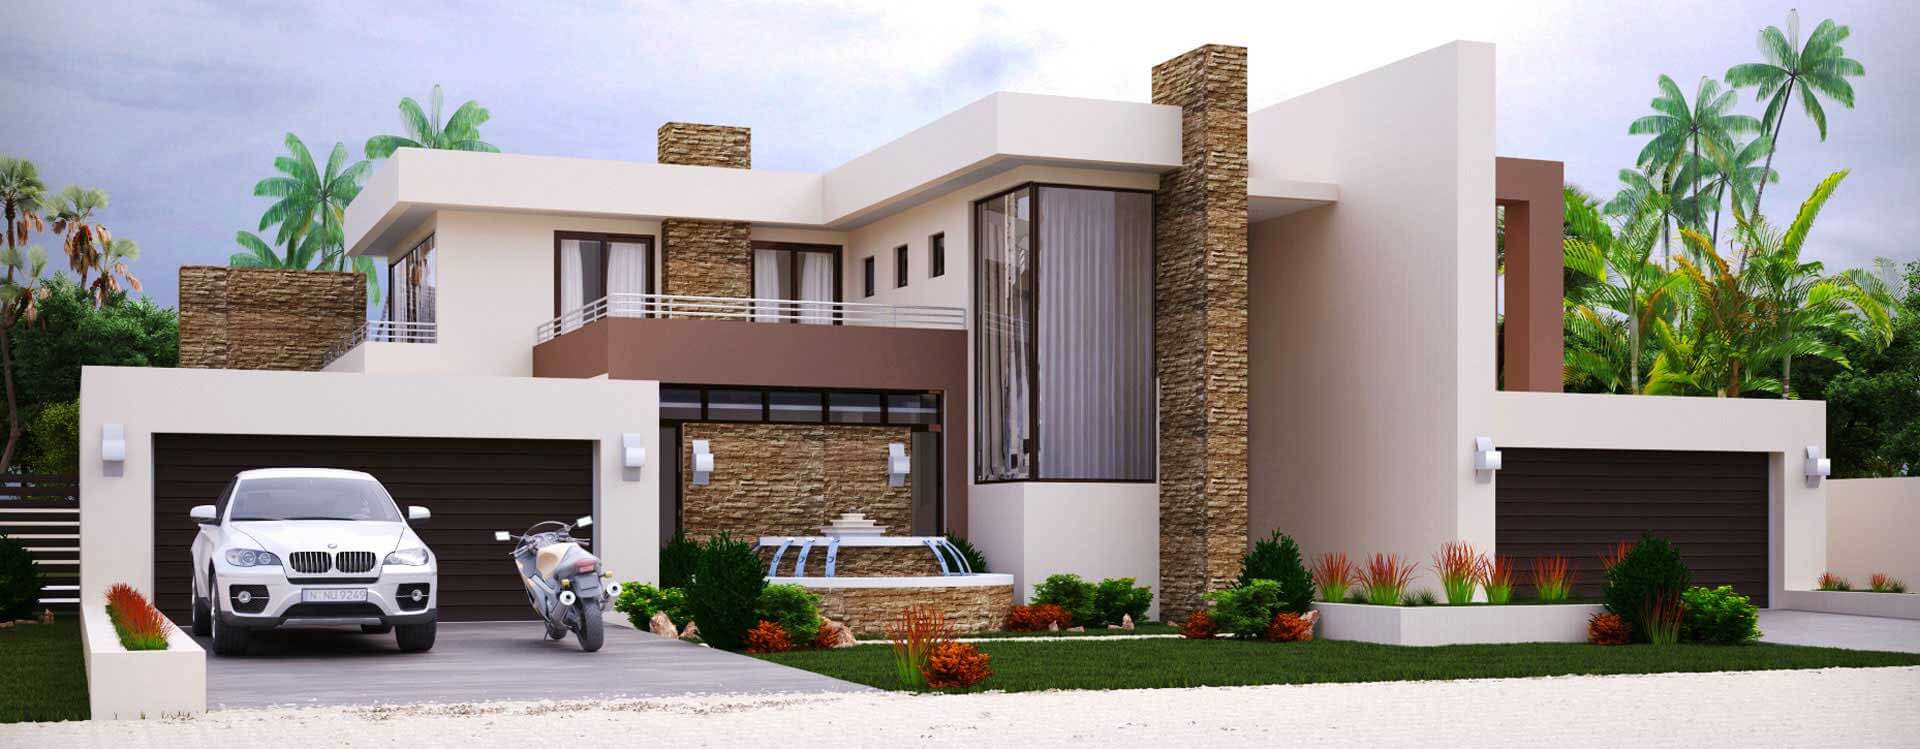 Best Kitchen Gallery: Modern Home Design With 4 Bedrooms House Plans of Modern House Plans South Africa on rachelxblog.com